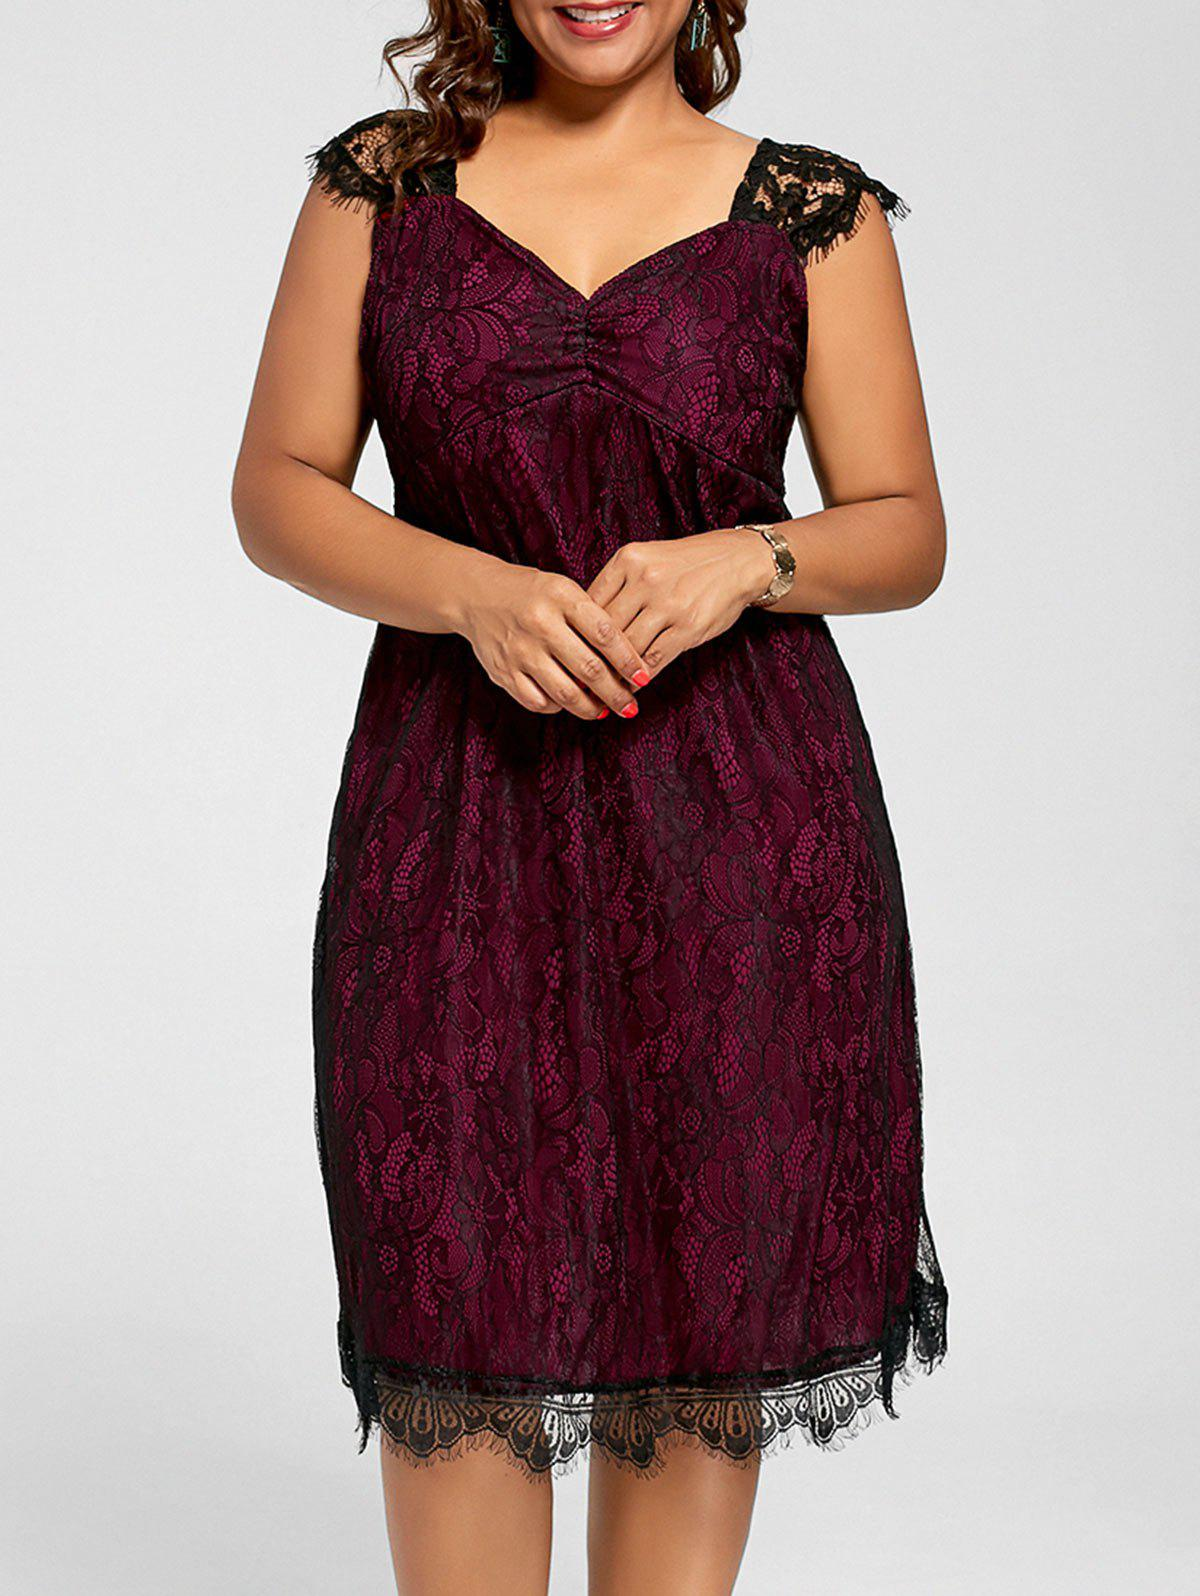 Lace A Line Plus Size Cocktail Dress